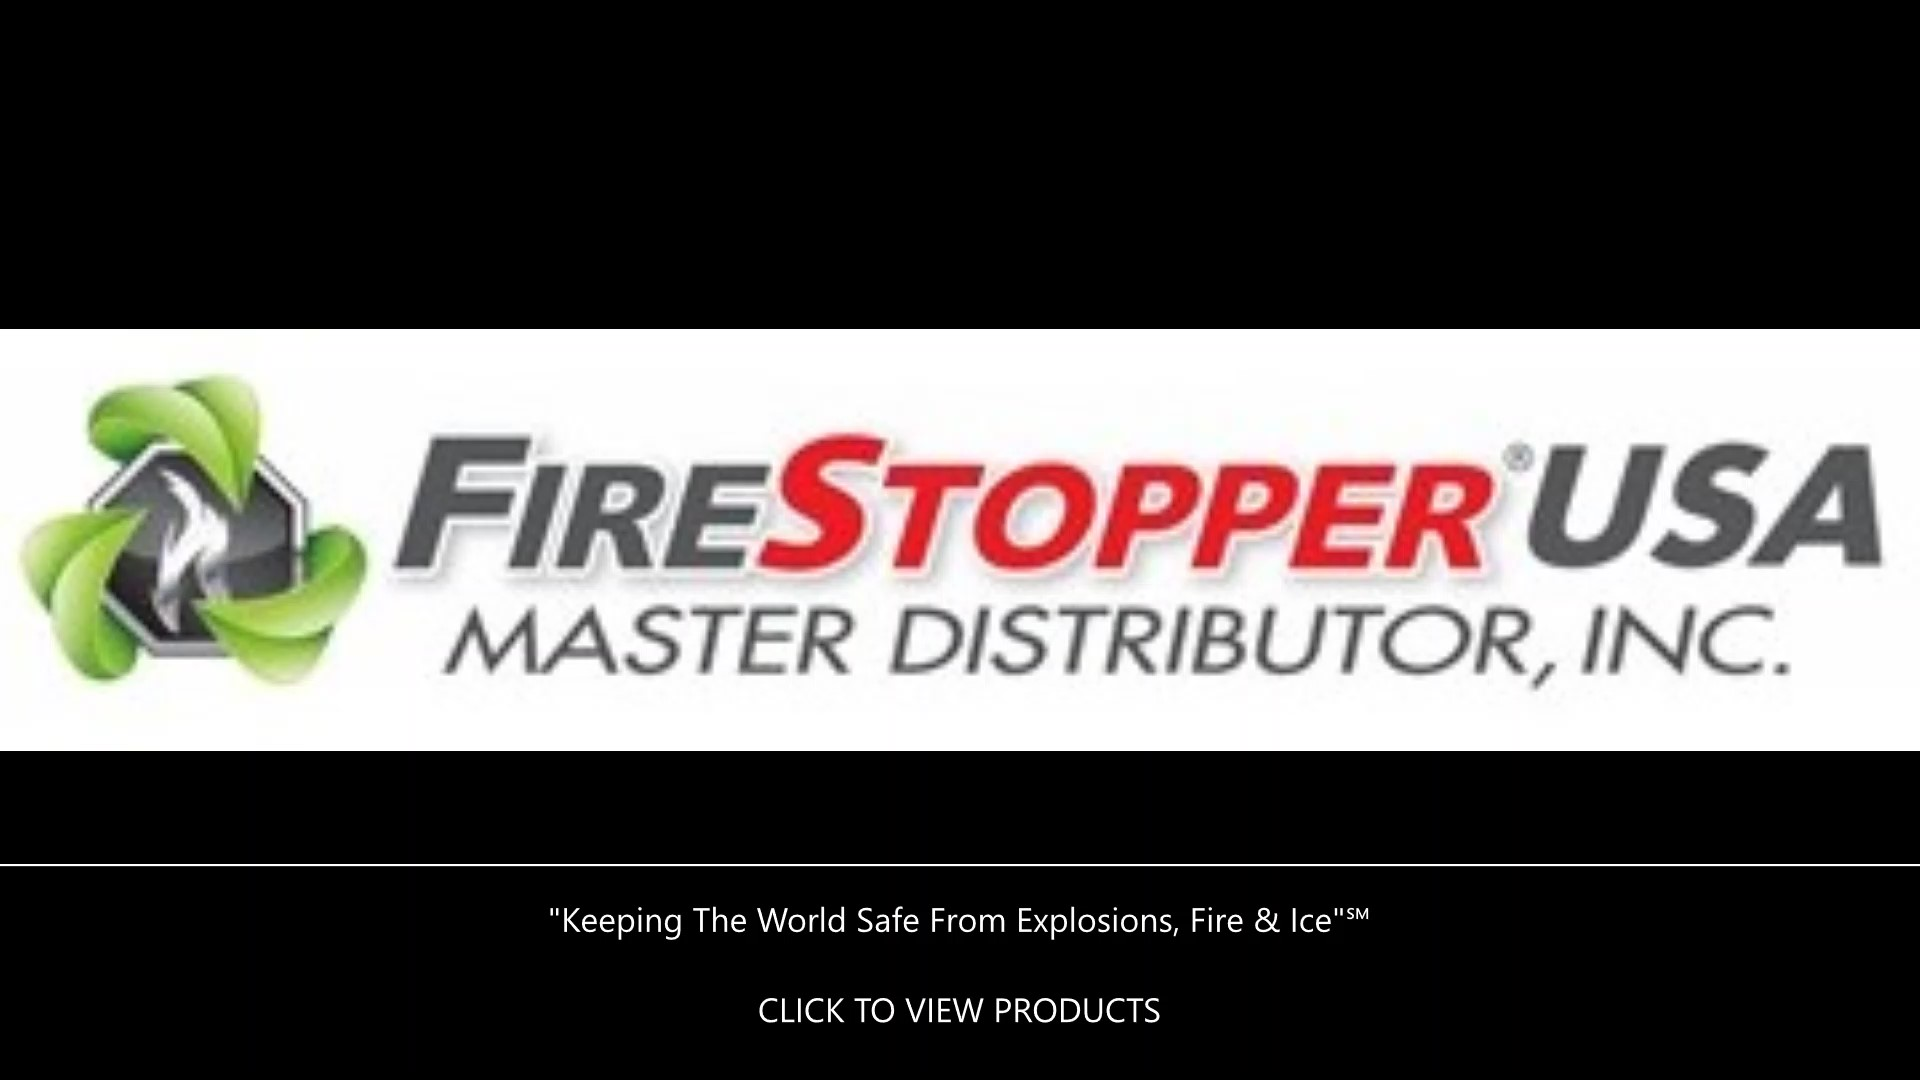 https://firestopperus.com/